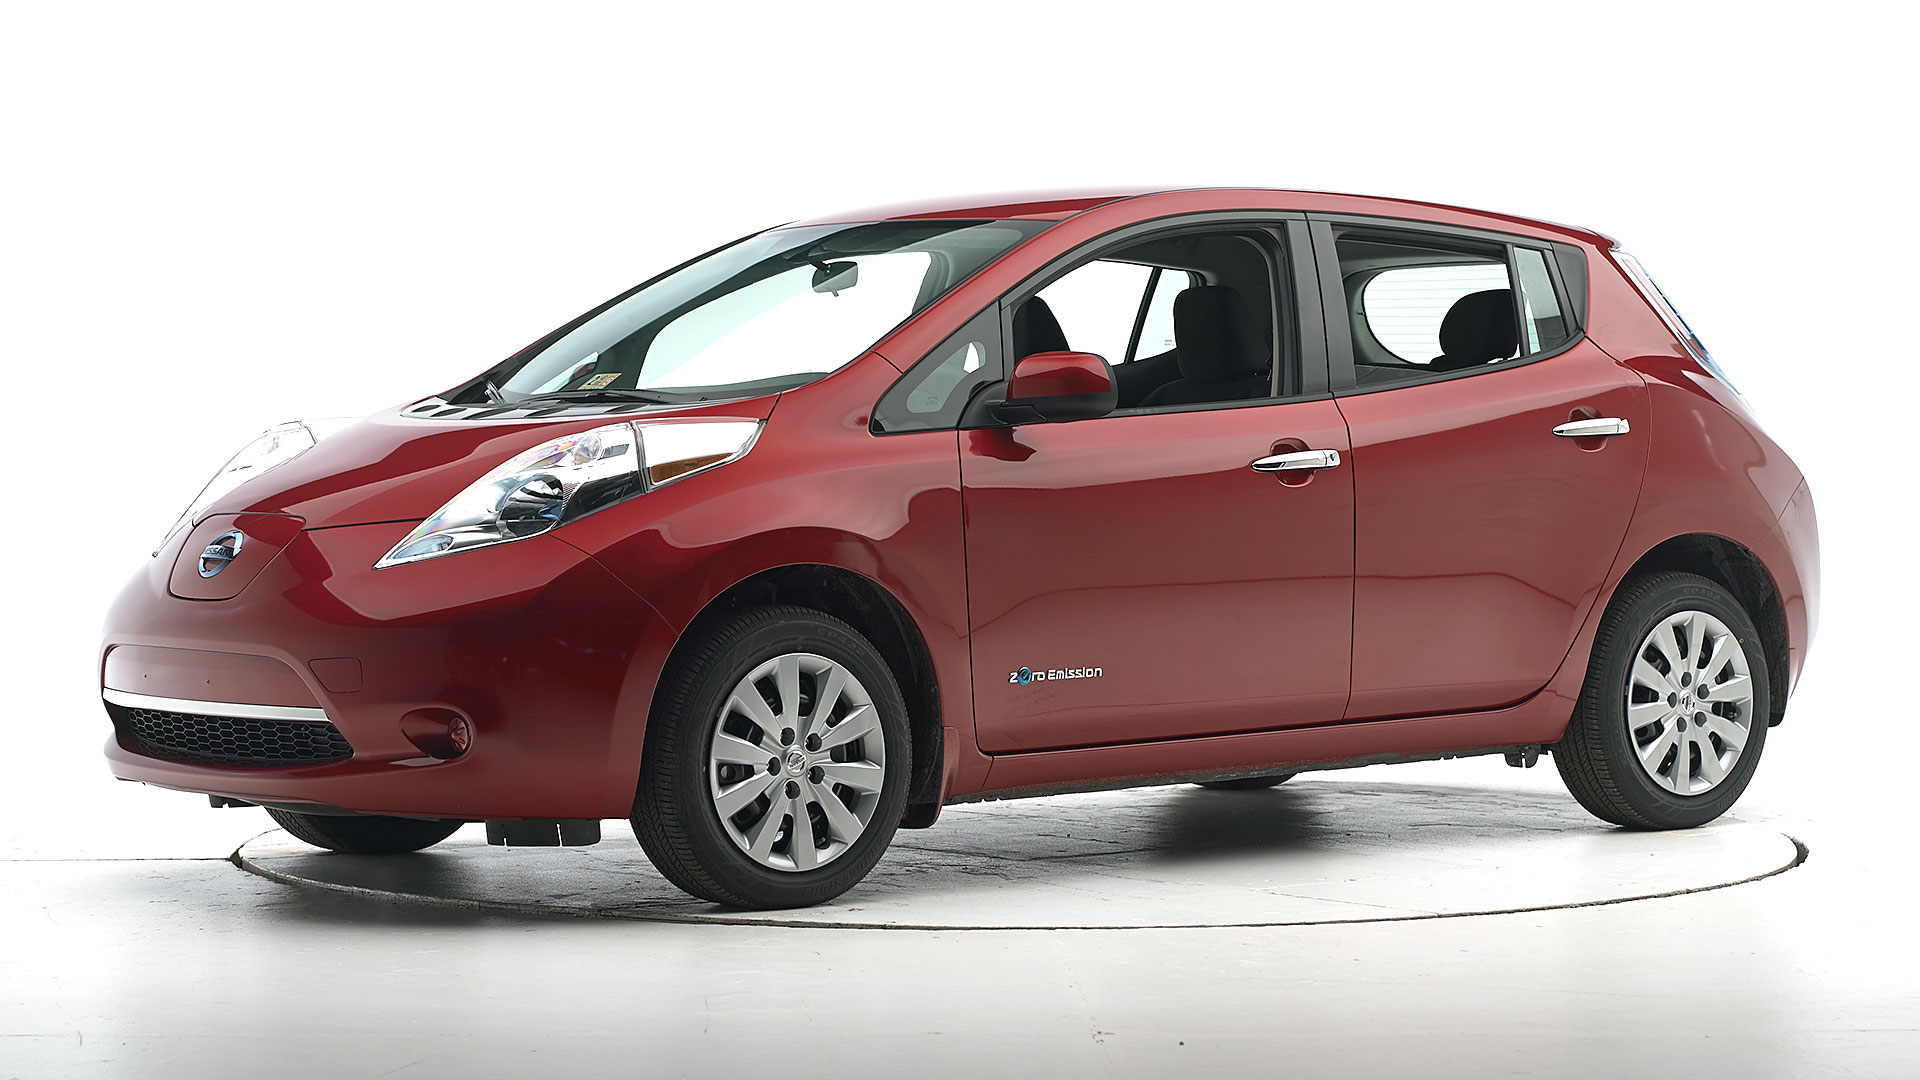 2014 Nissan Leaf 4-door hatchback